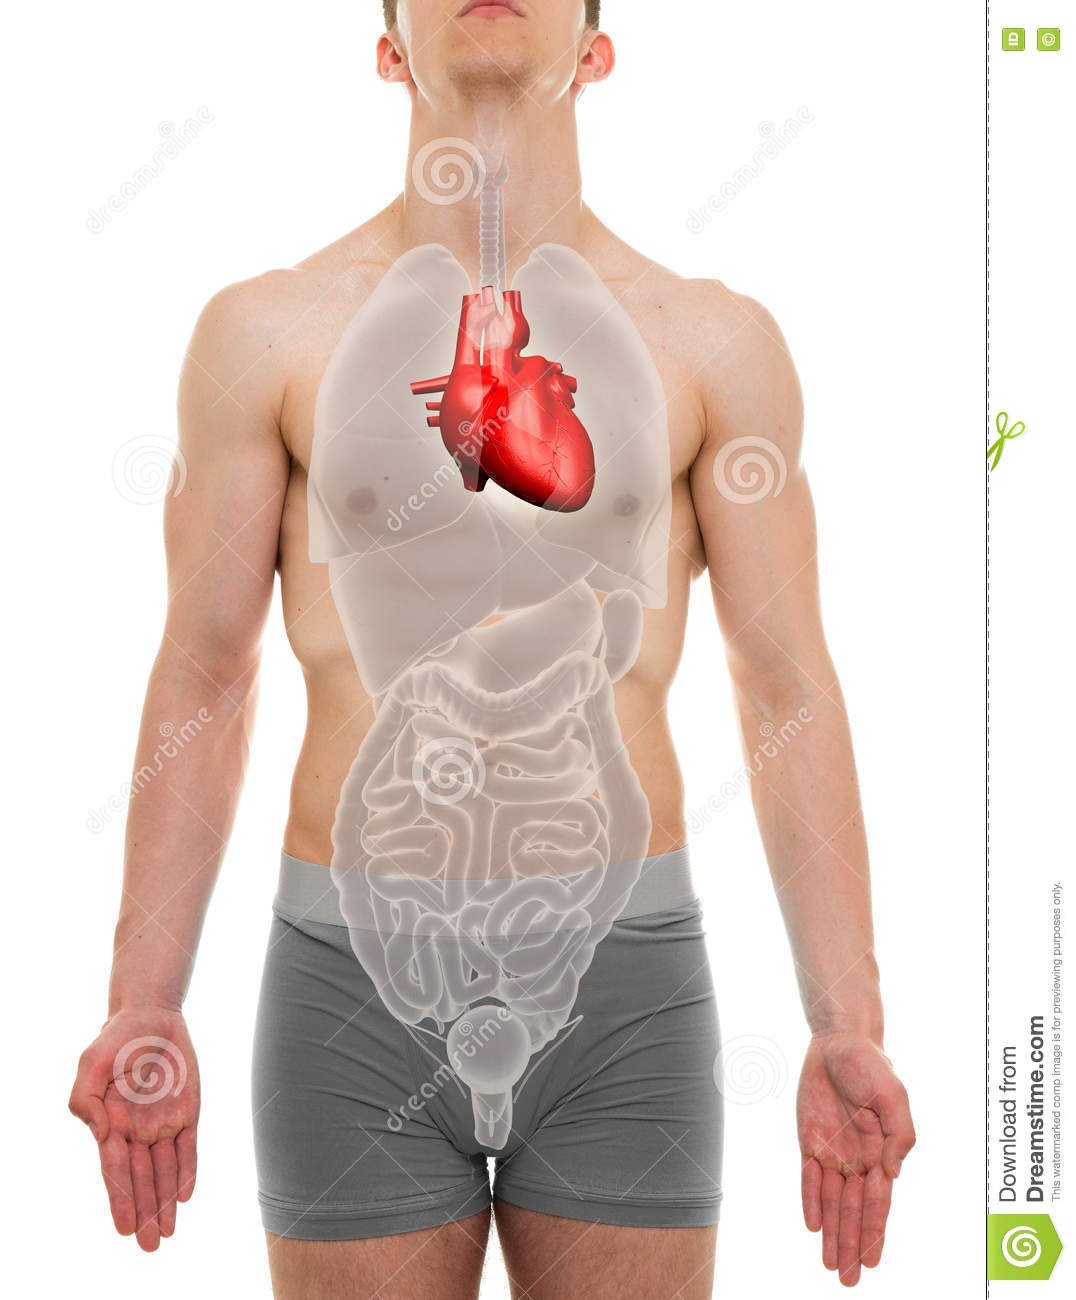 Heart male internal organs anatomy 3d illustration stock photo download heart male internal organs anatomy 3d illustration stock photo image of chest ccuart Choice Image